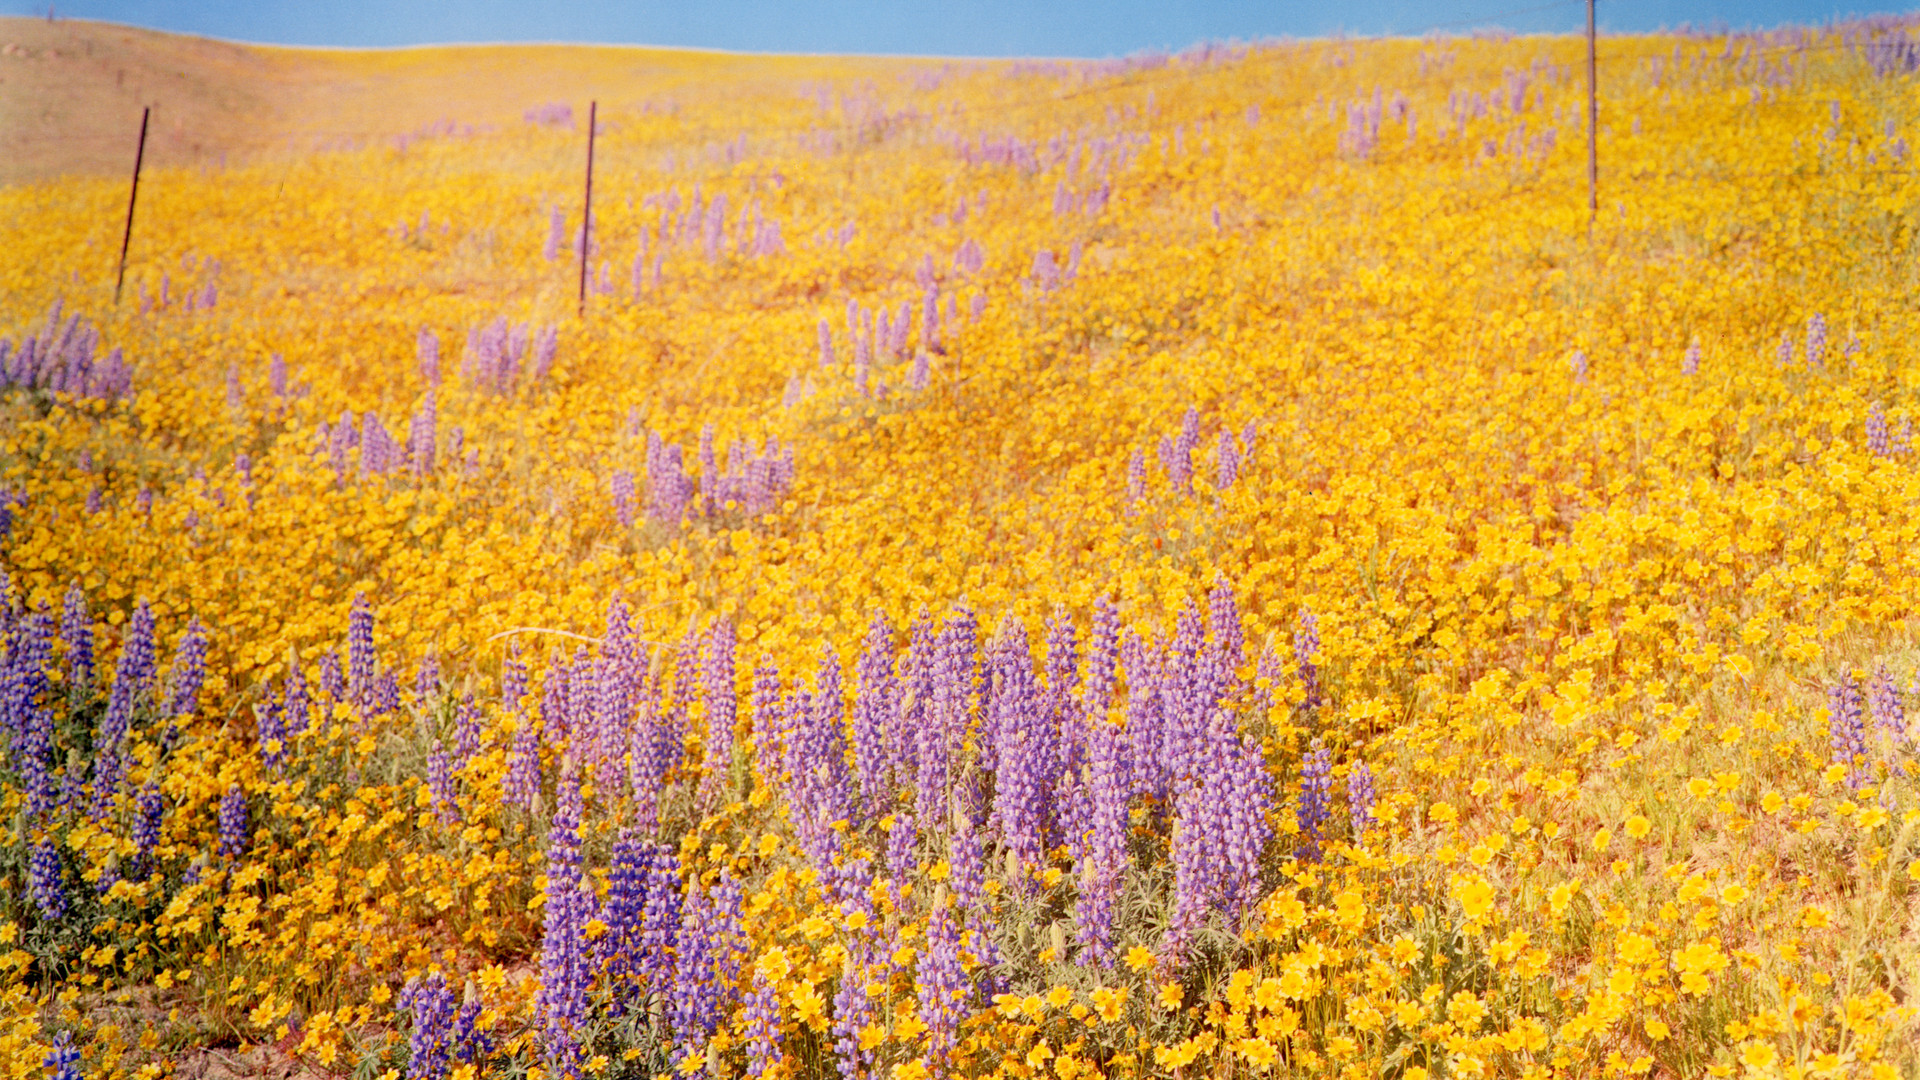 William Eggleston, Yellow Flowers, Hillside, California, 1978